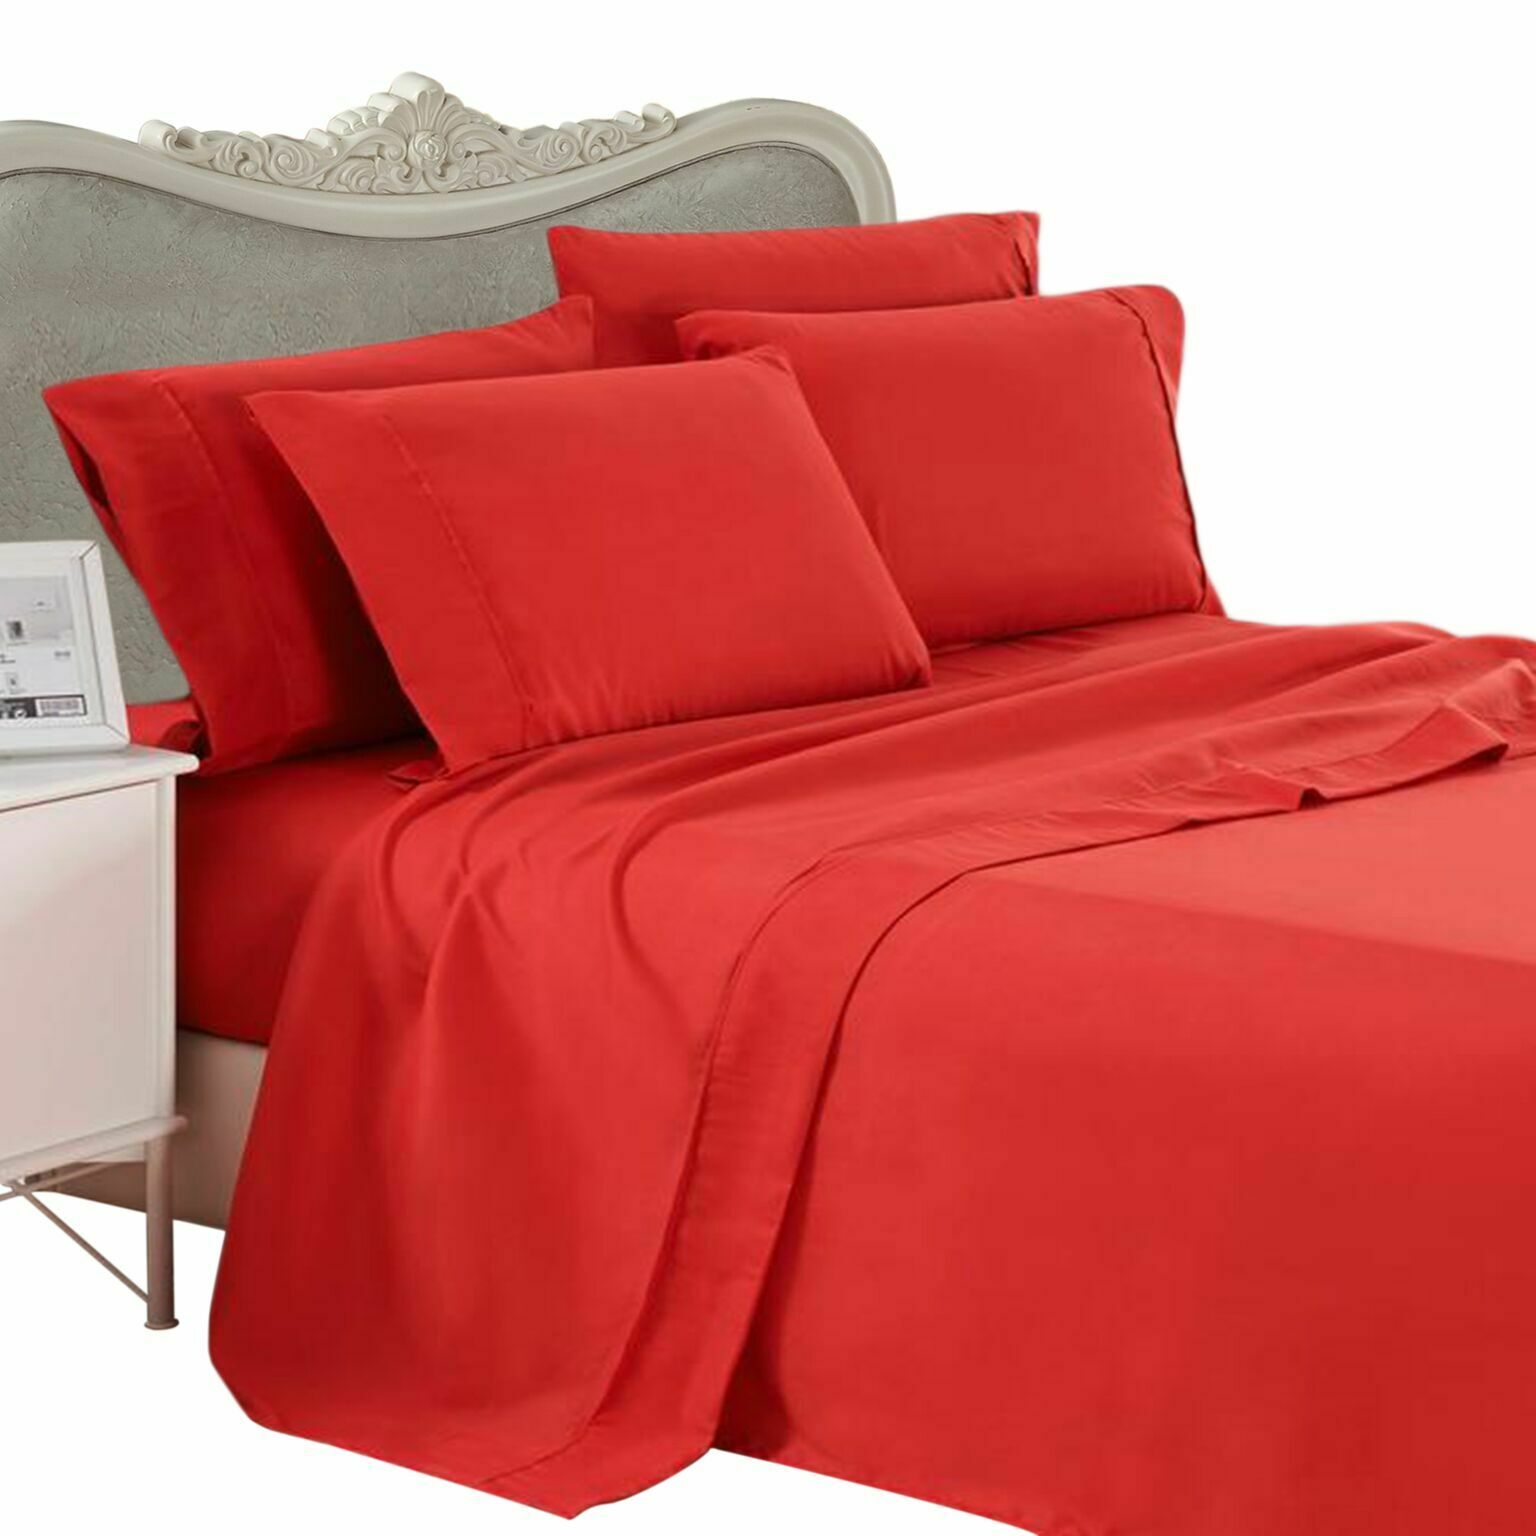 1000 Thread Count 100% Egyptian Cotton Sheet Set,1000 TC, TWIN XL , rot Solid